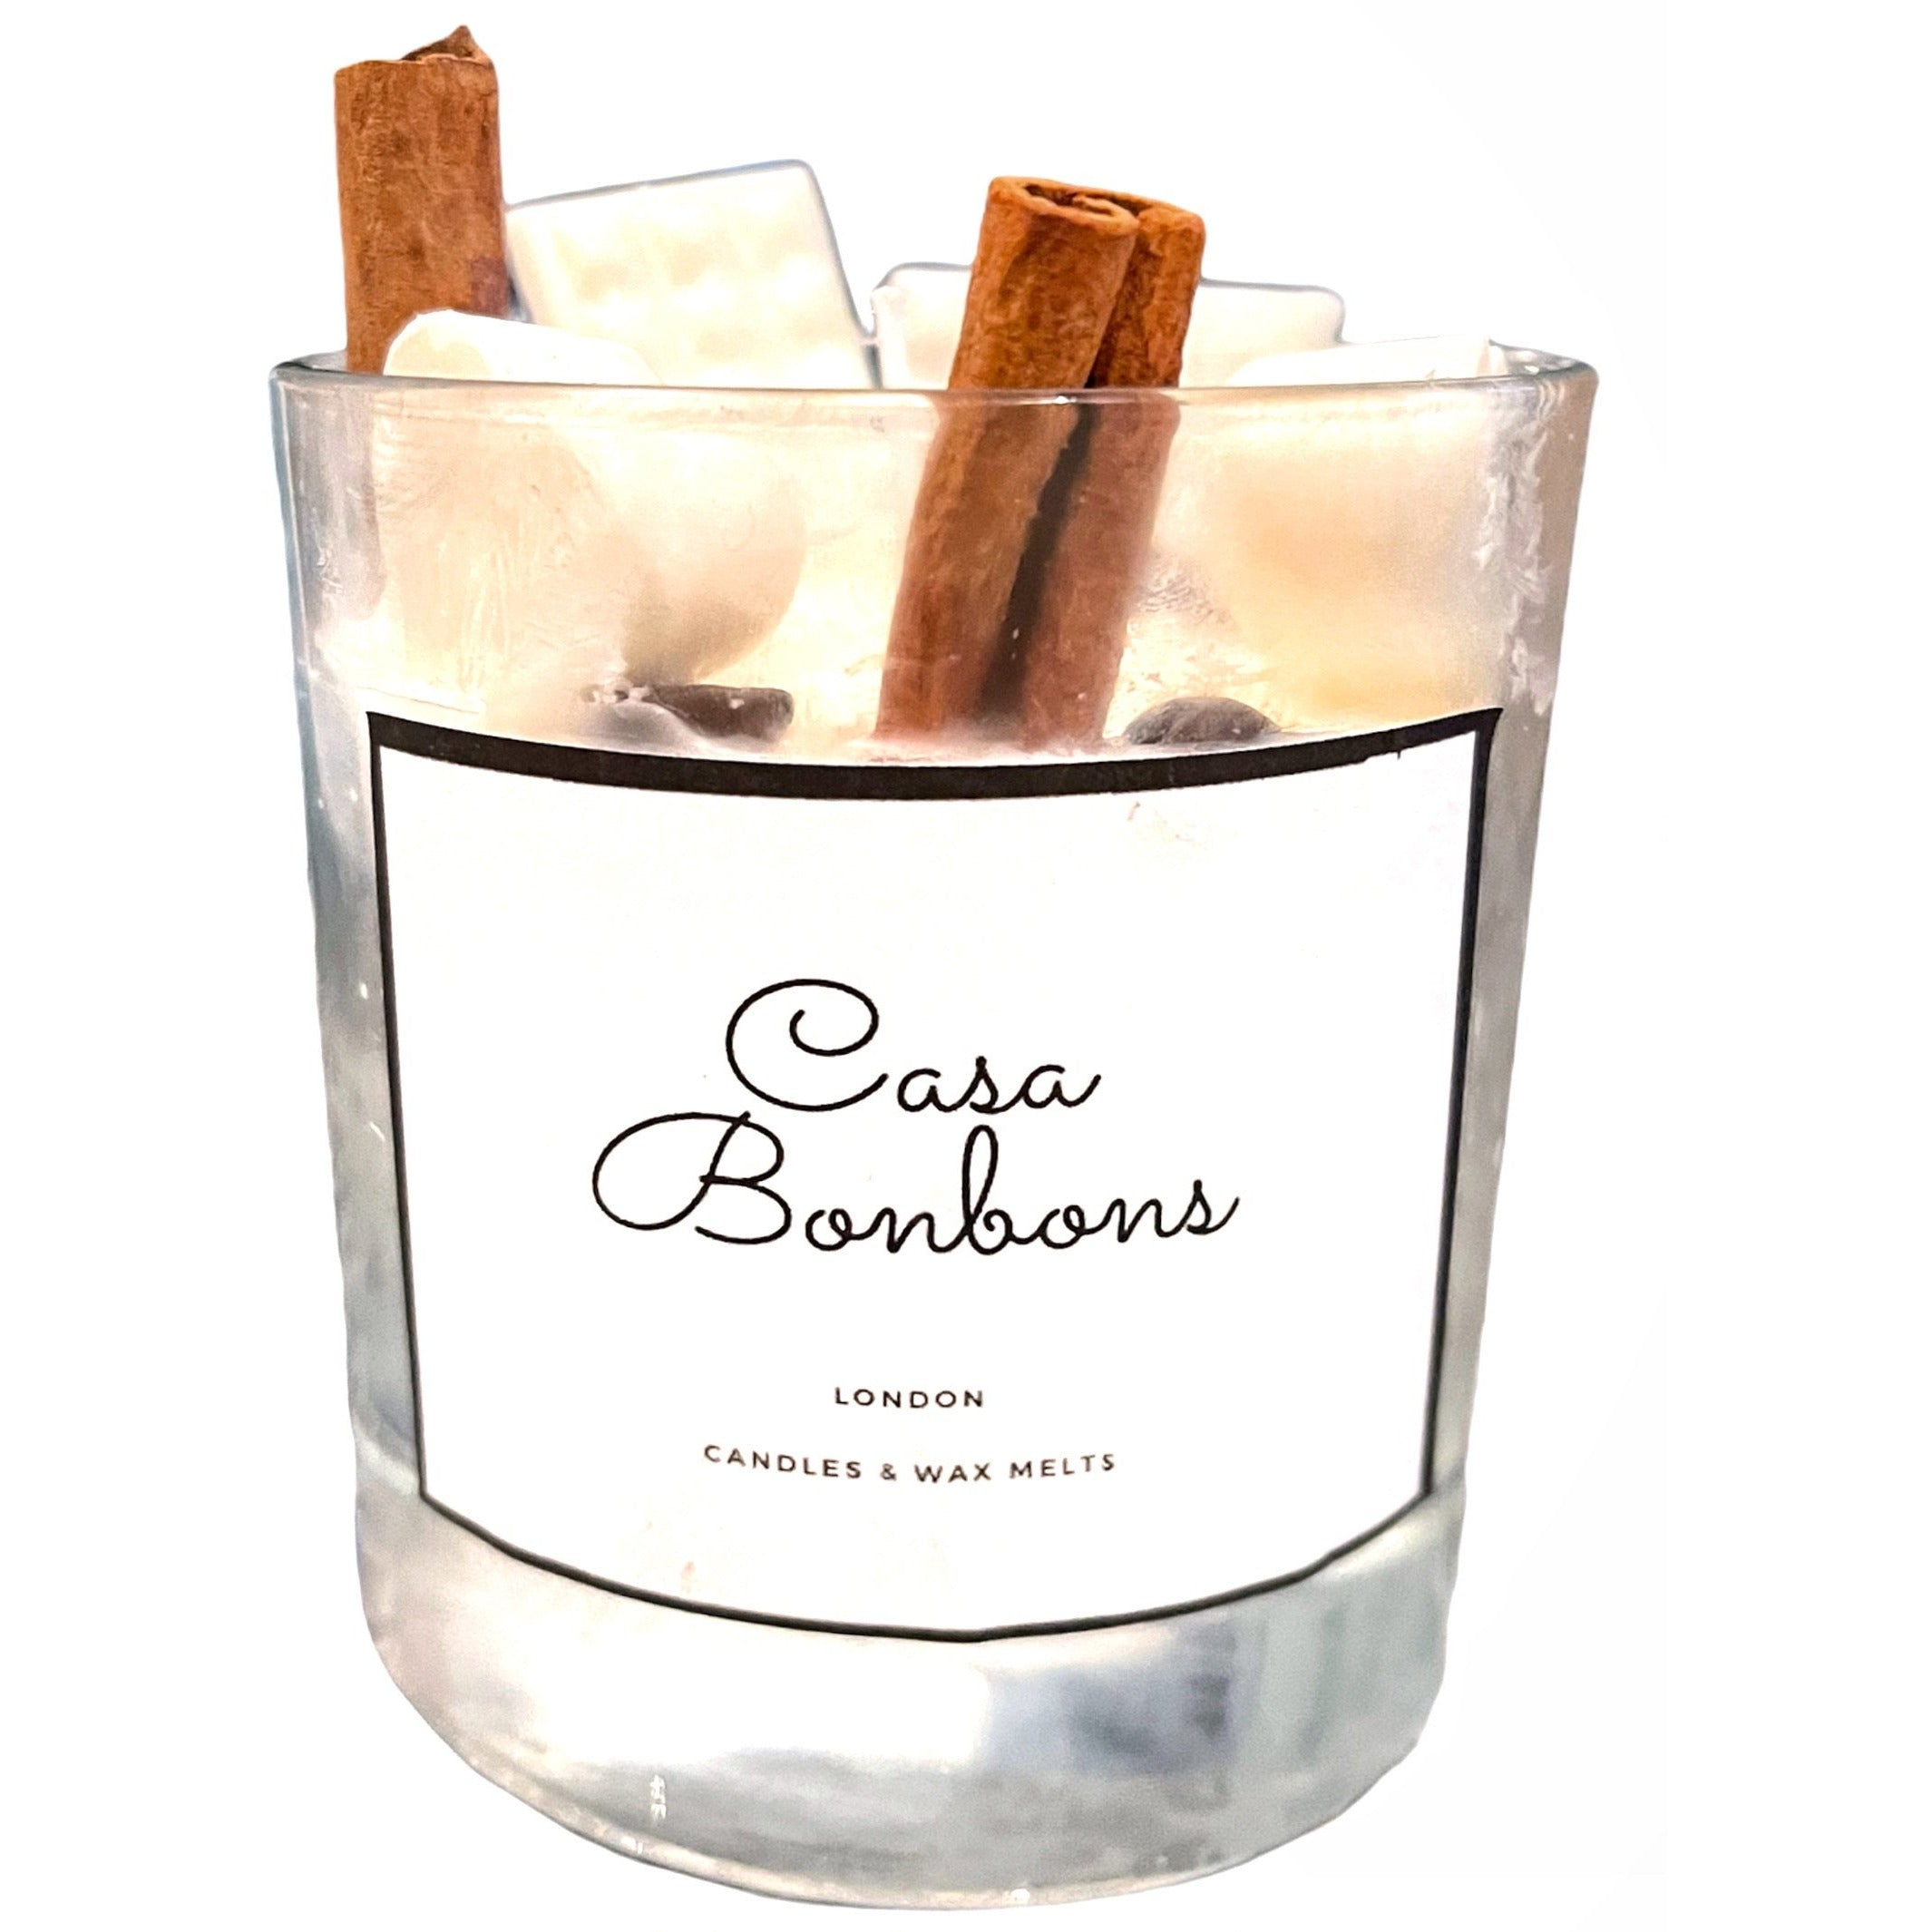 Chocolate scented Soy Wax glass Candle with natural Cinnamon long stick, top decorated with Soy wax chocolate bar and hearts design,  PRE ORDER delivery end of February - natoorio